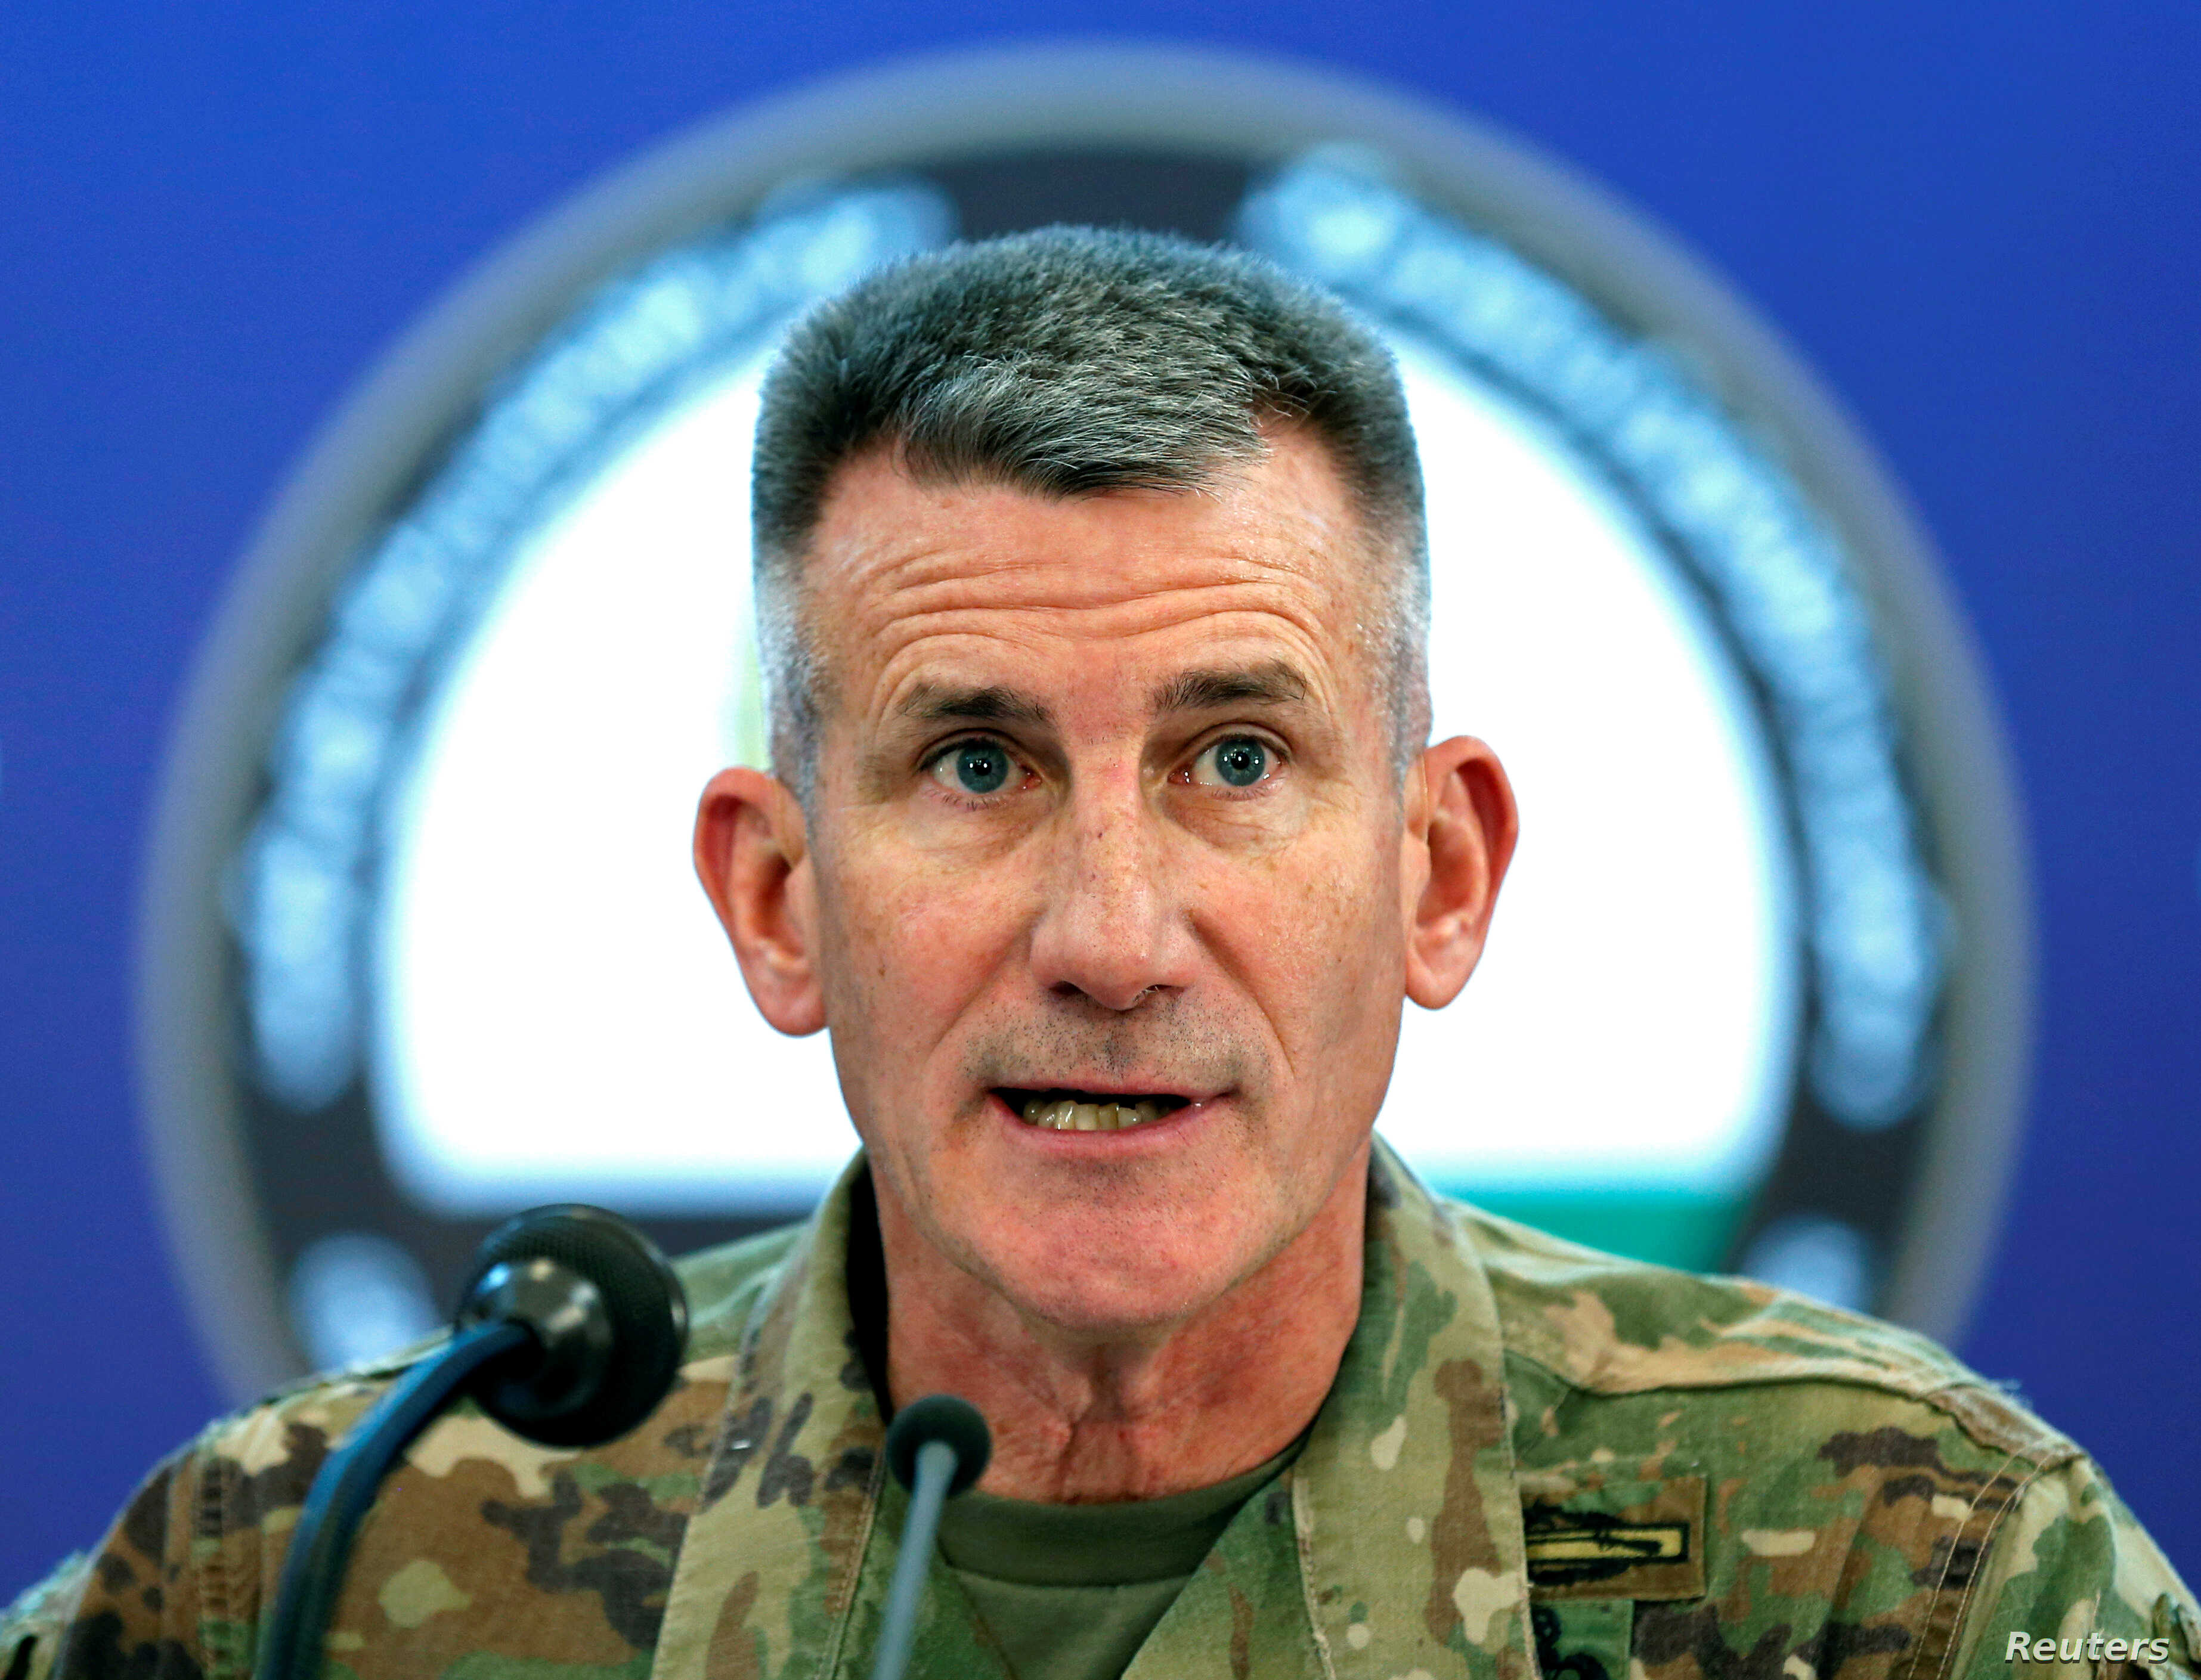 U.S. Army General John Nicholson, Commander of Resolute Support forces and U.S. forces in Afghanistan, speaks during a news conference in Kabul, Afghanistan, Nov. 20, 2017.